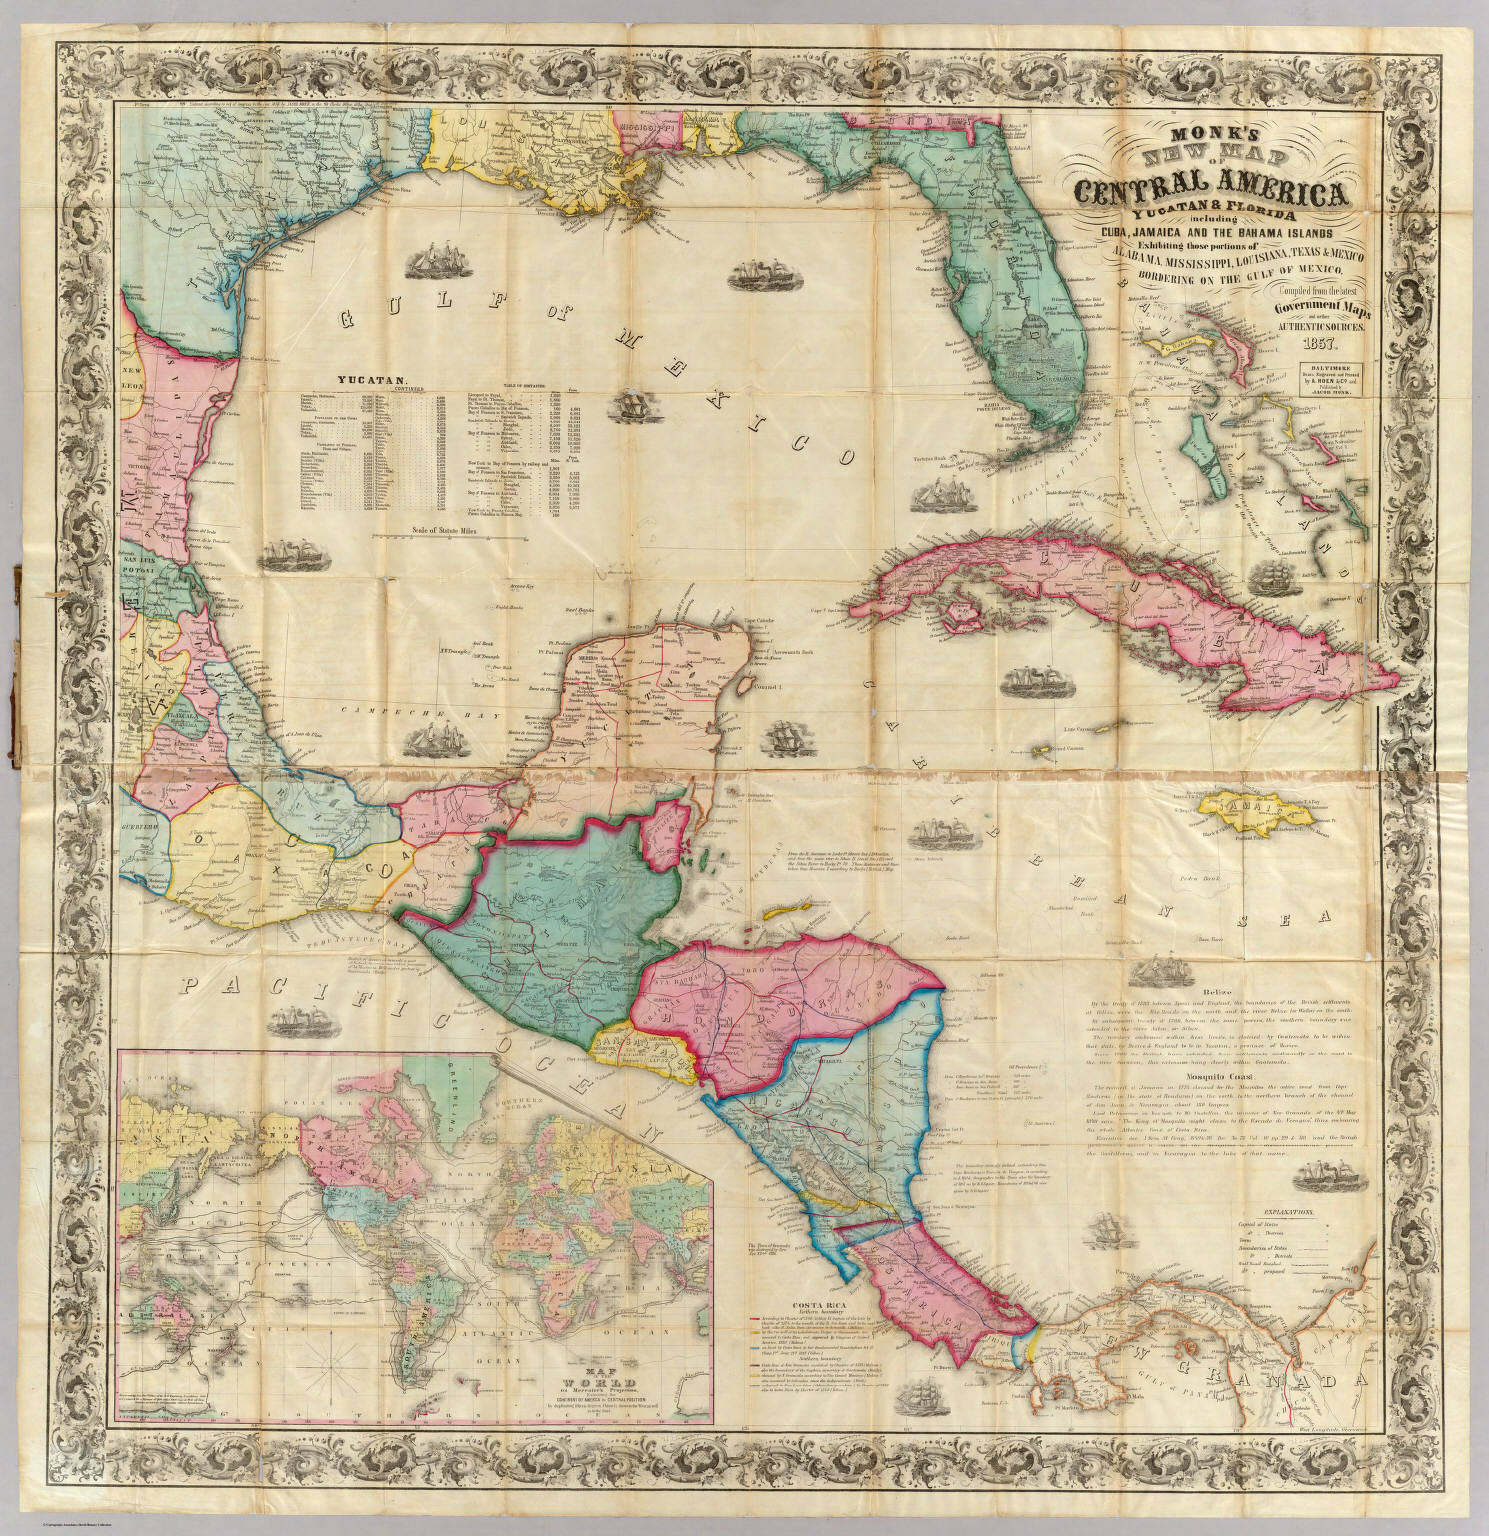 Map Of Florida And Cuba.Monk S New Map Of Central America Cuba Florida C David Rumsey